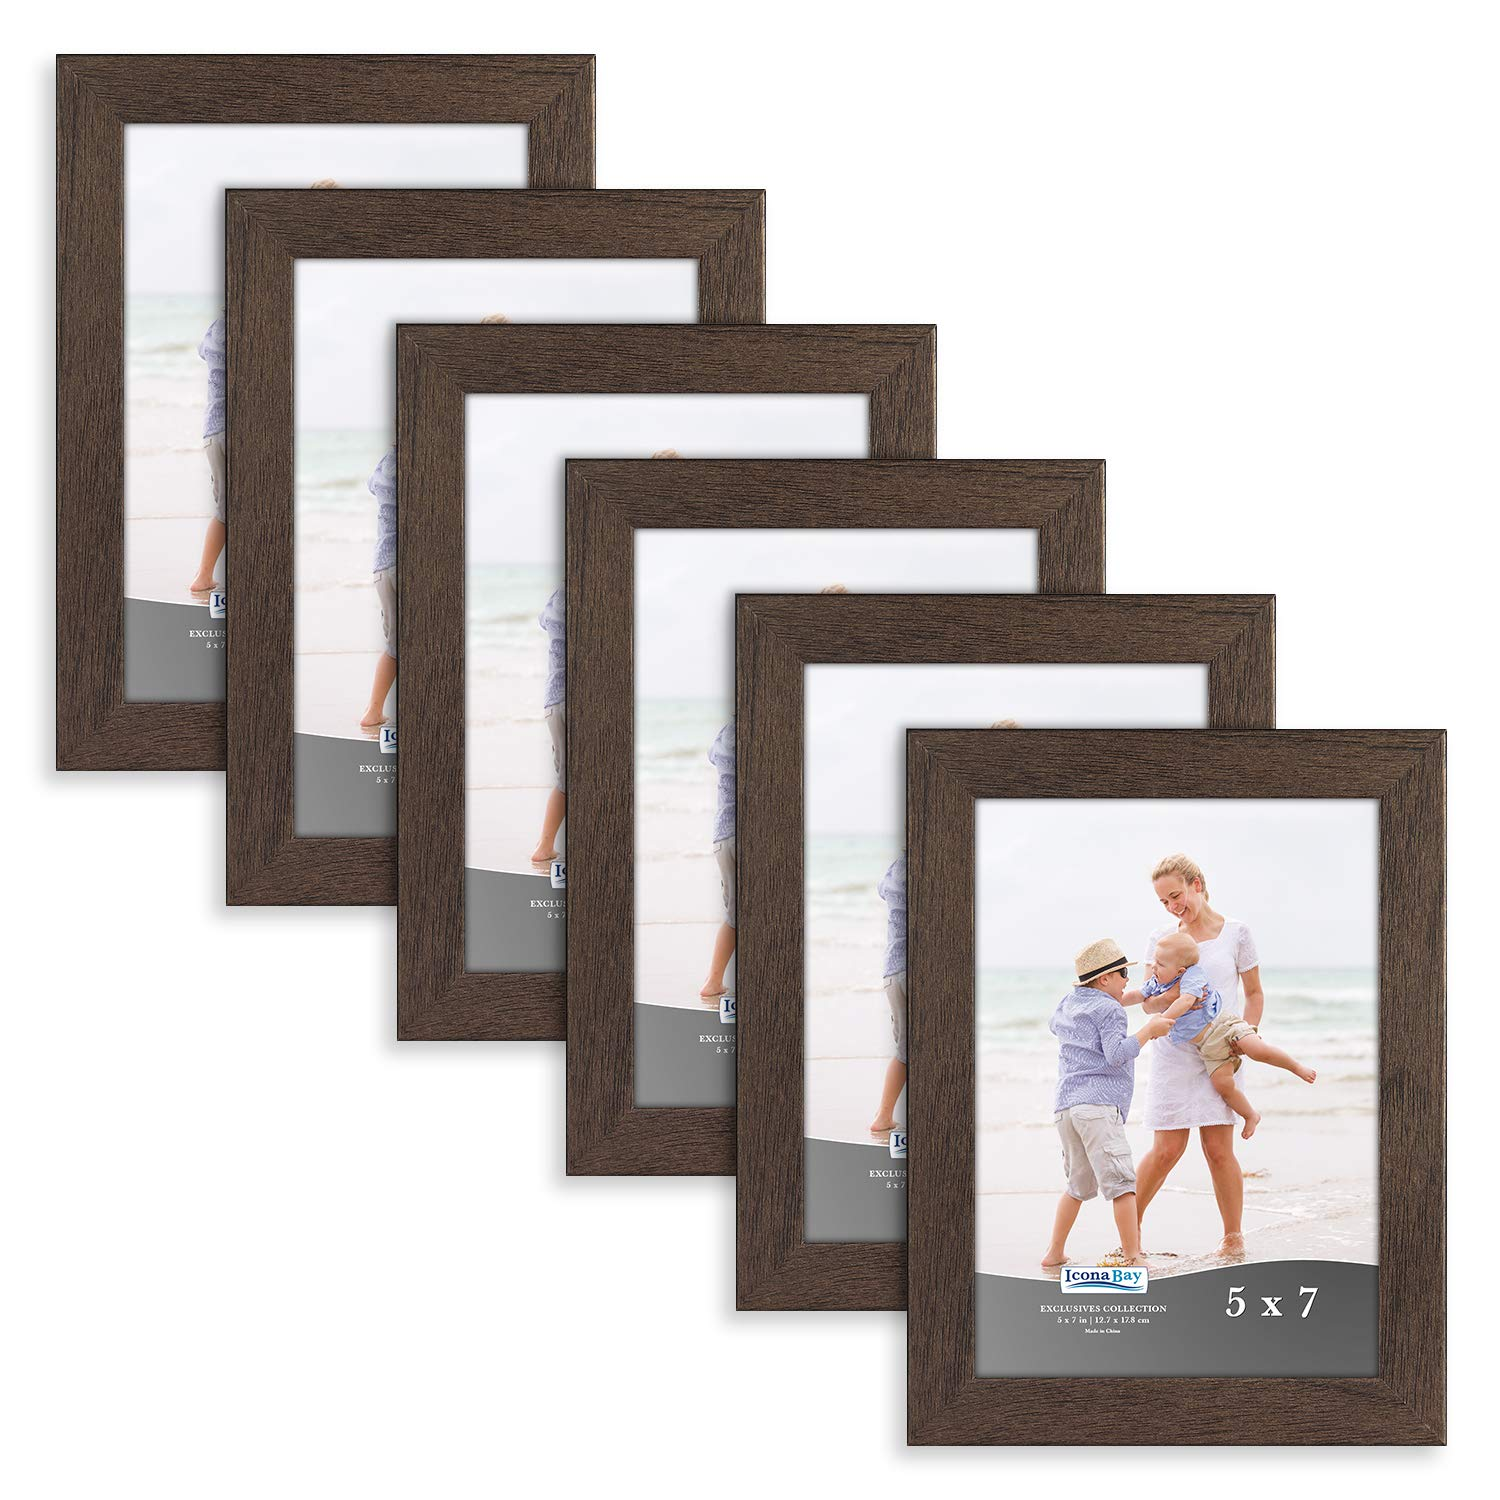 Icona Bay 5x7 Picture Frame (6 Pack, Hickory Brown), Brown Sturdy Wooden Composite Photo Frame 5 x 7, Wall or Table Mount, Set of 6 Exclusives Collection by Icona Bay